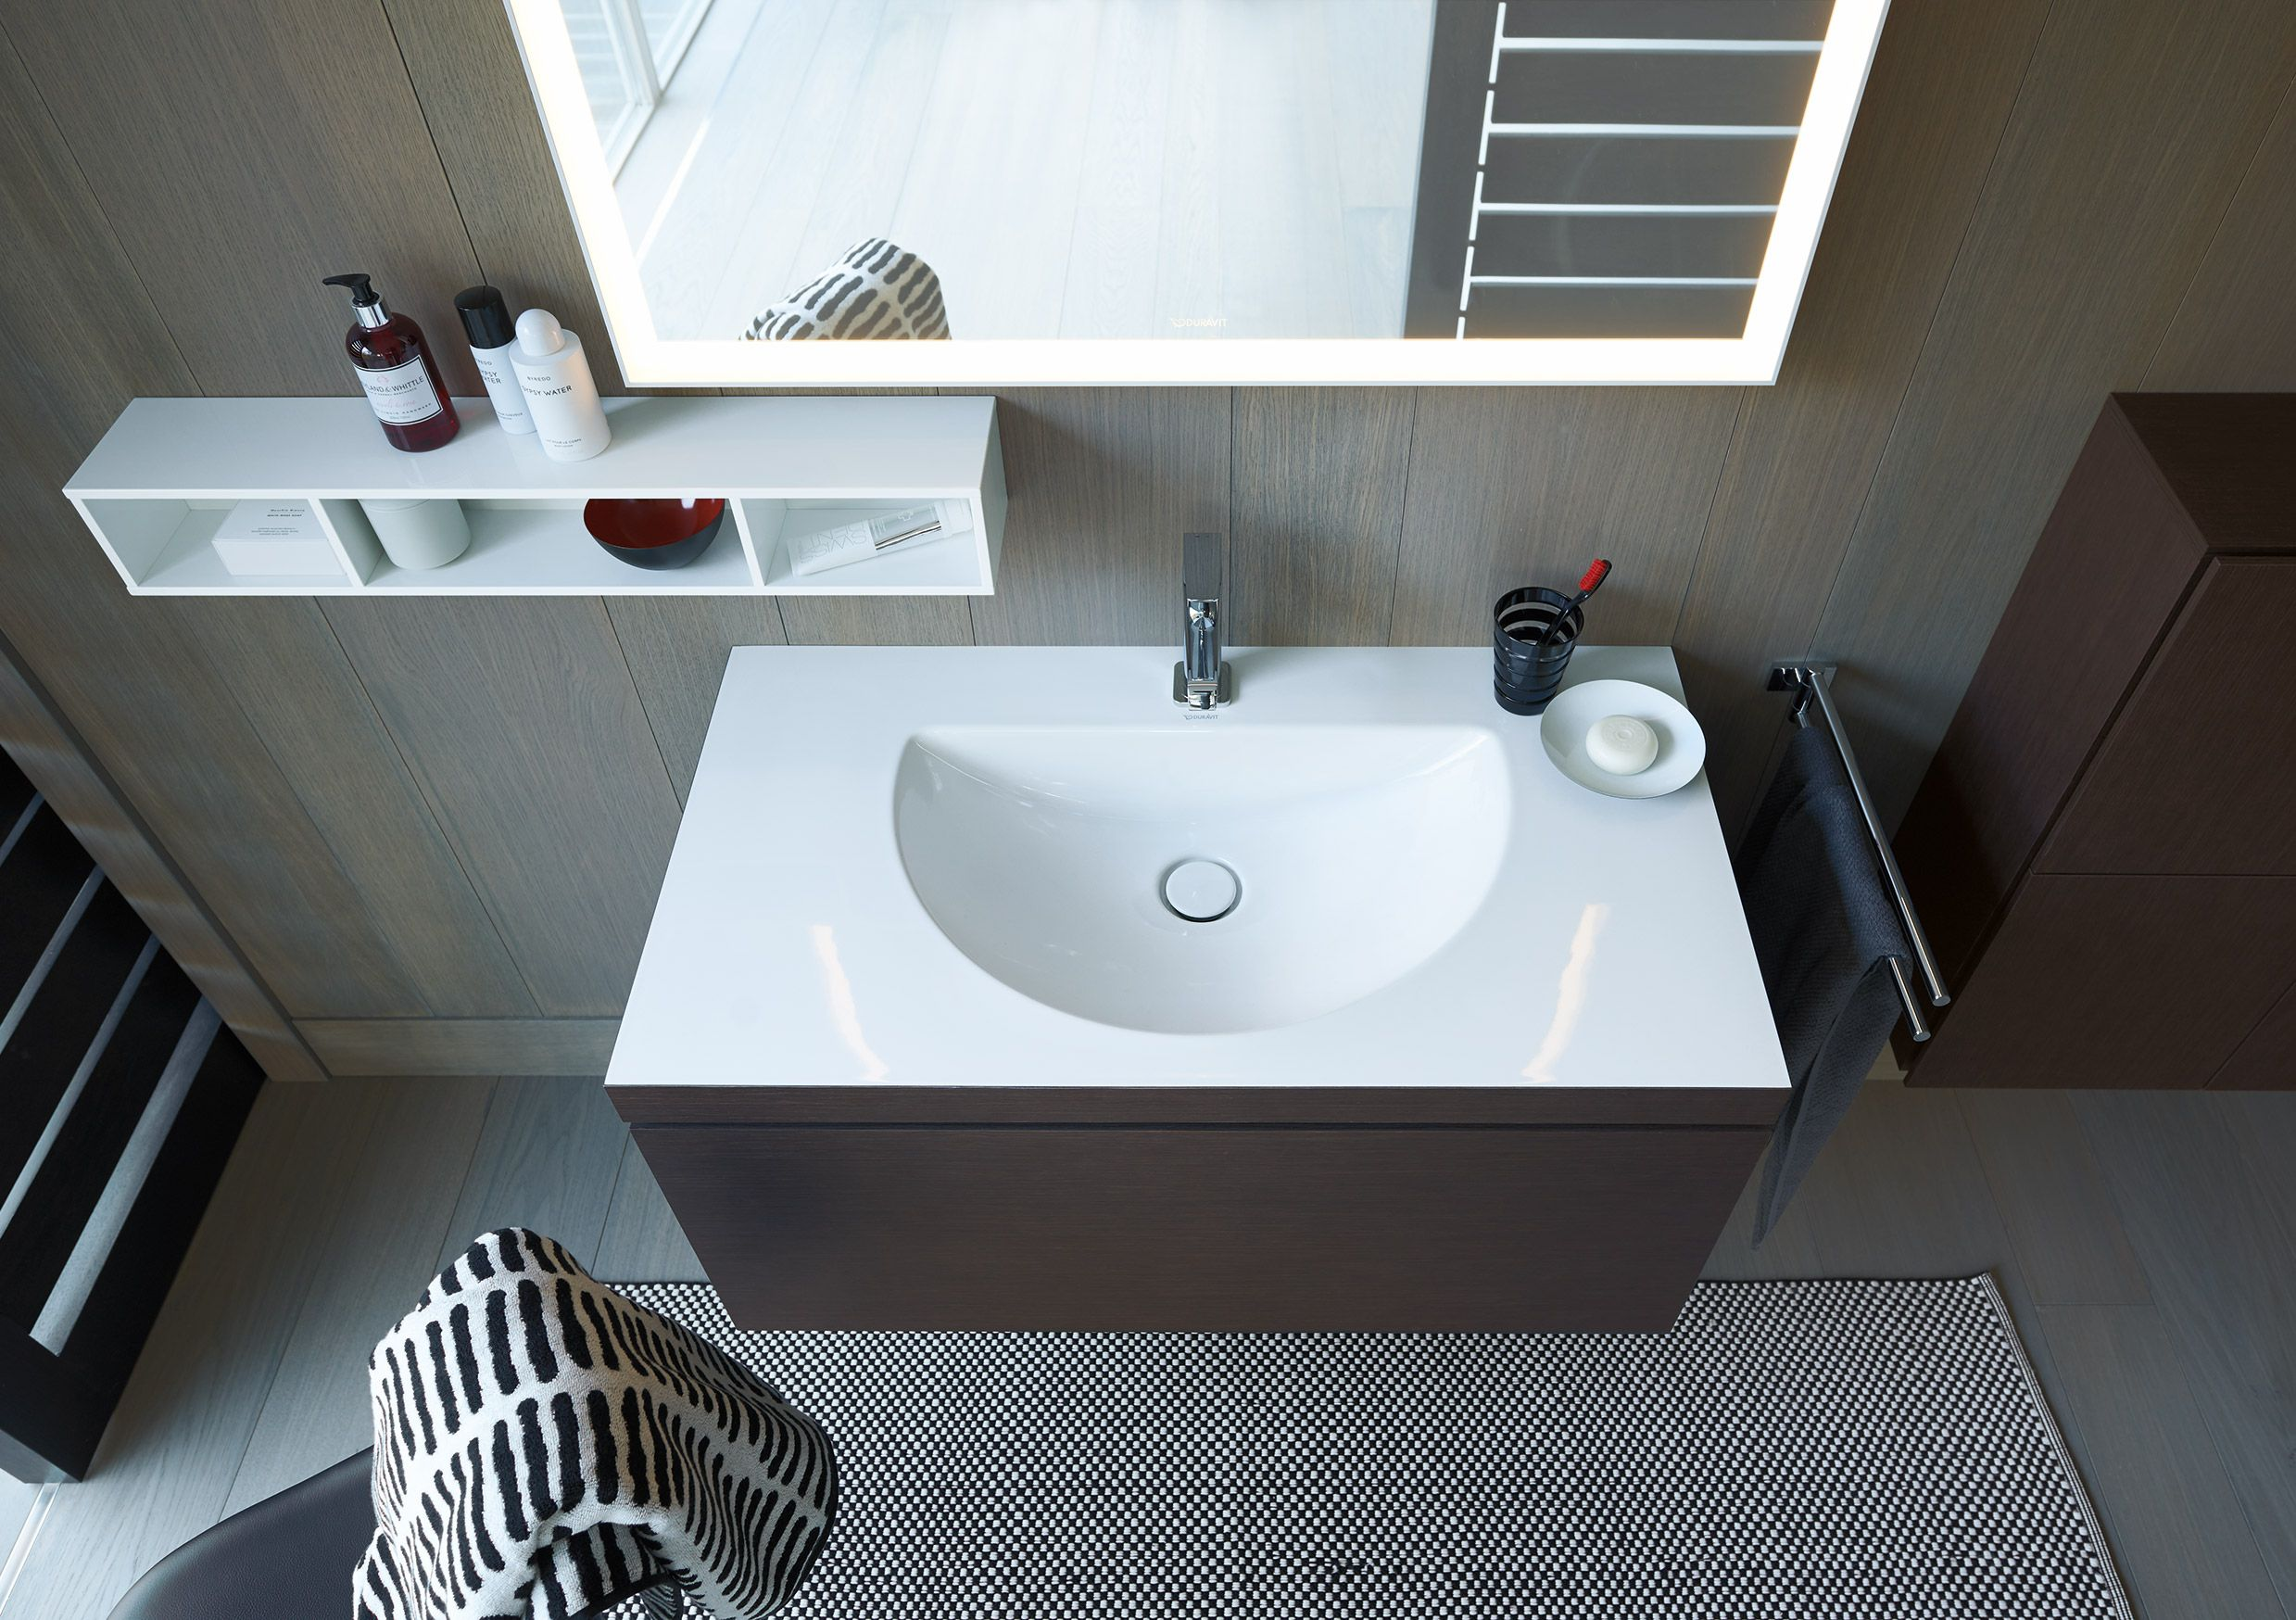 Bathroom Design Easytoclean Basin With Streamlined Design - Designer bathroom sinks singapore